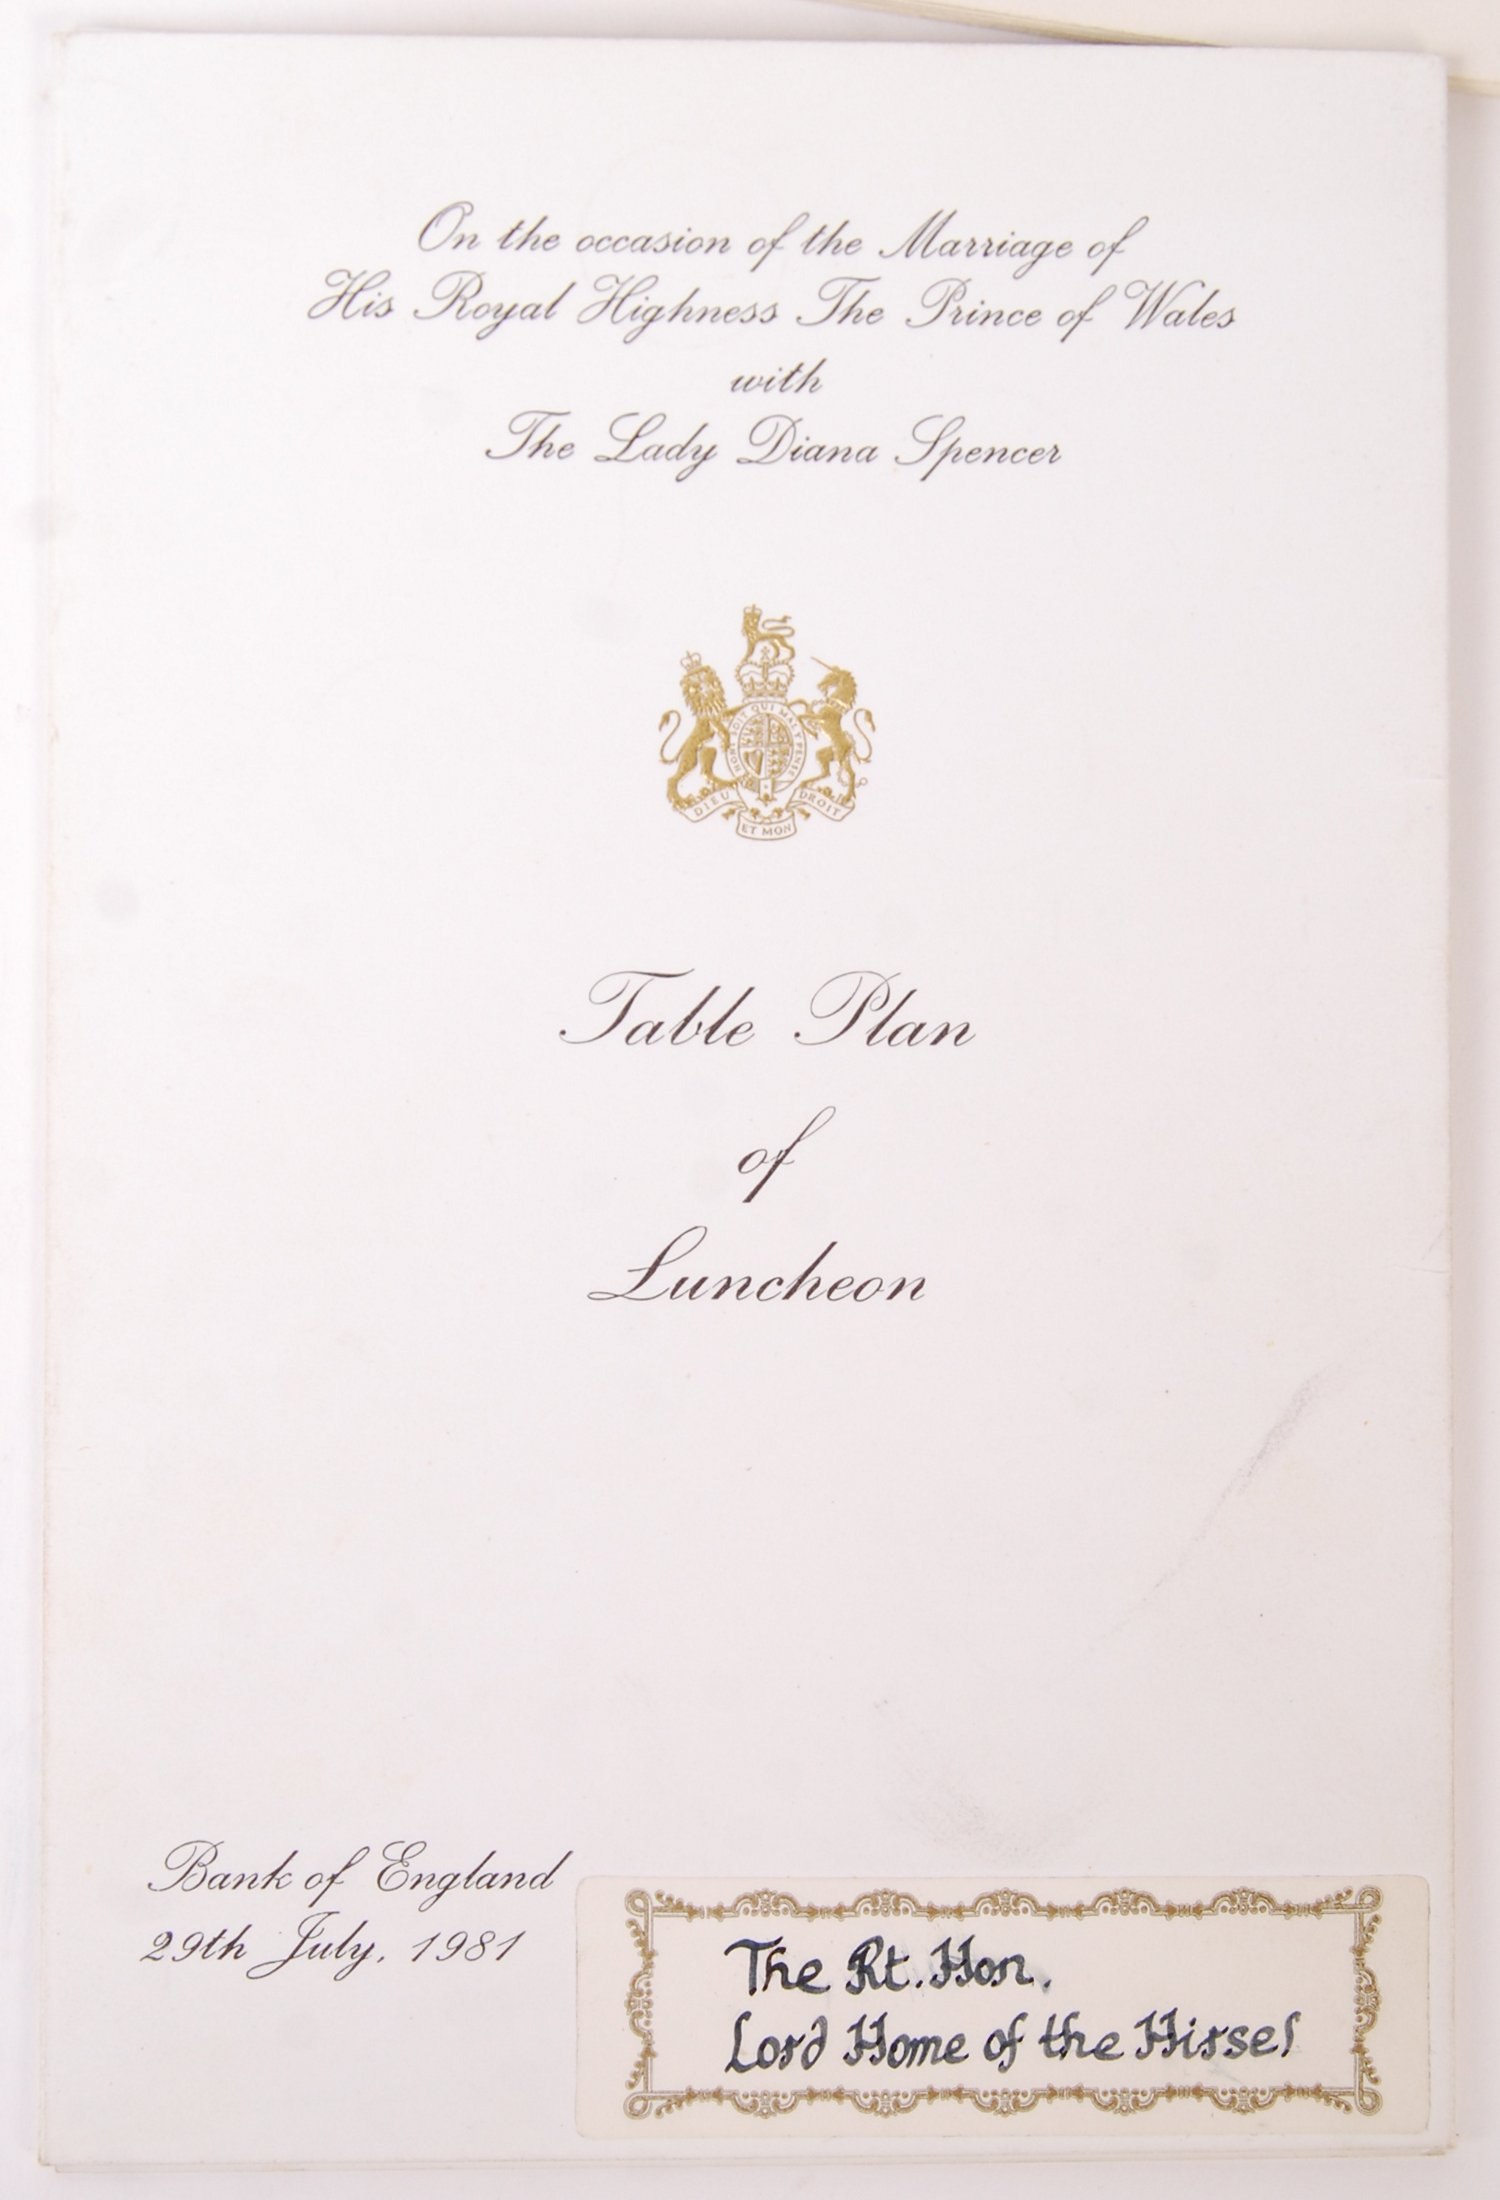 MARRIAGE OF THE PRINCE OF WALES & LADY DIANA SPENCER WEDDING EPHEMERA - Image 6 of 6